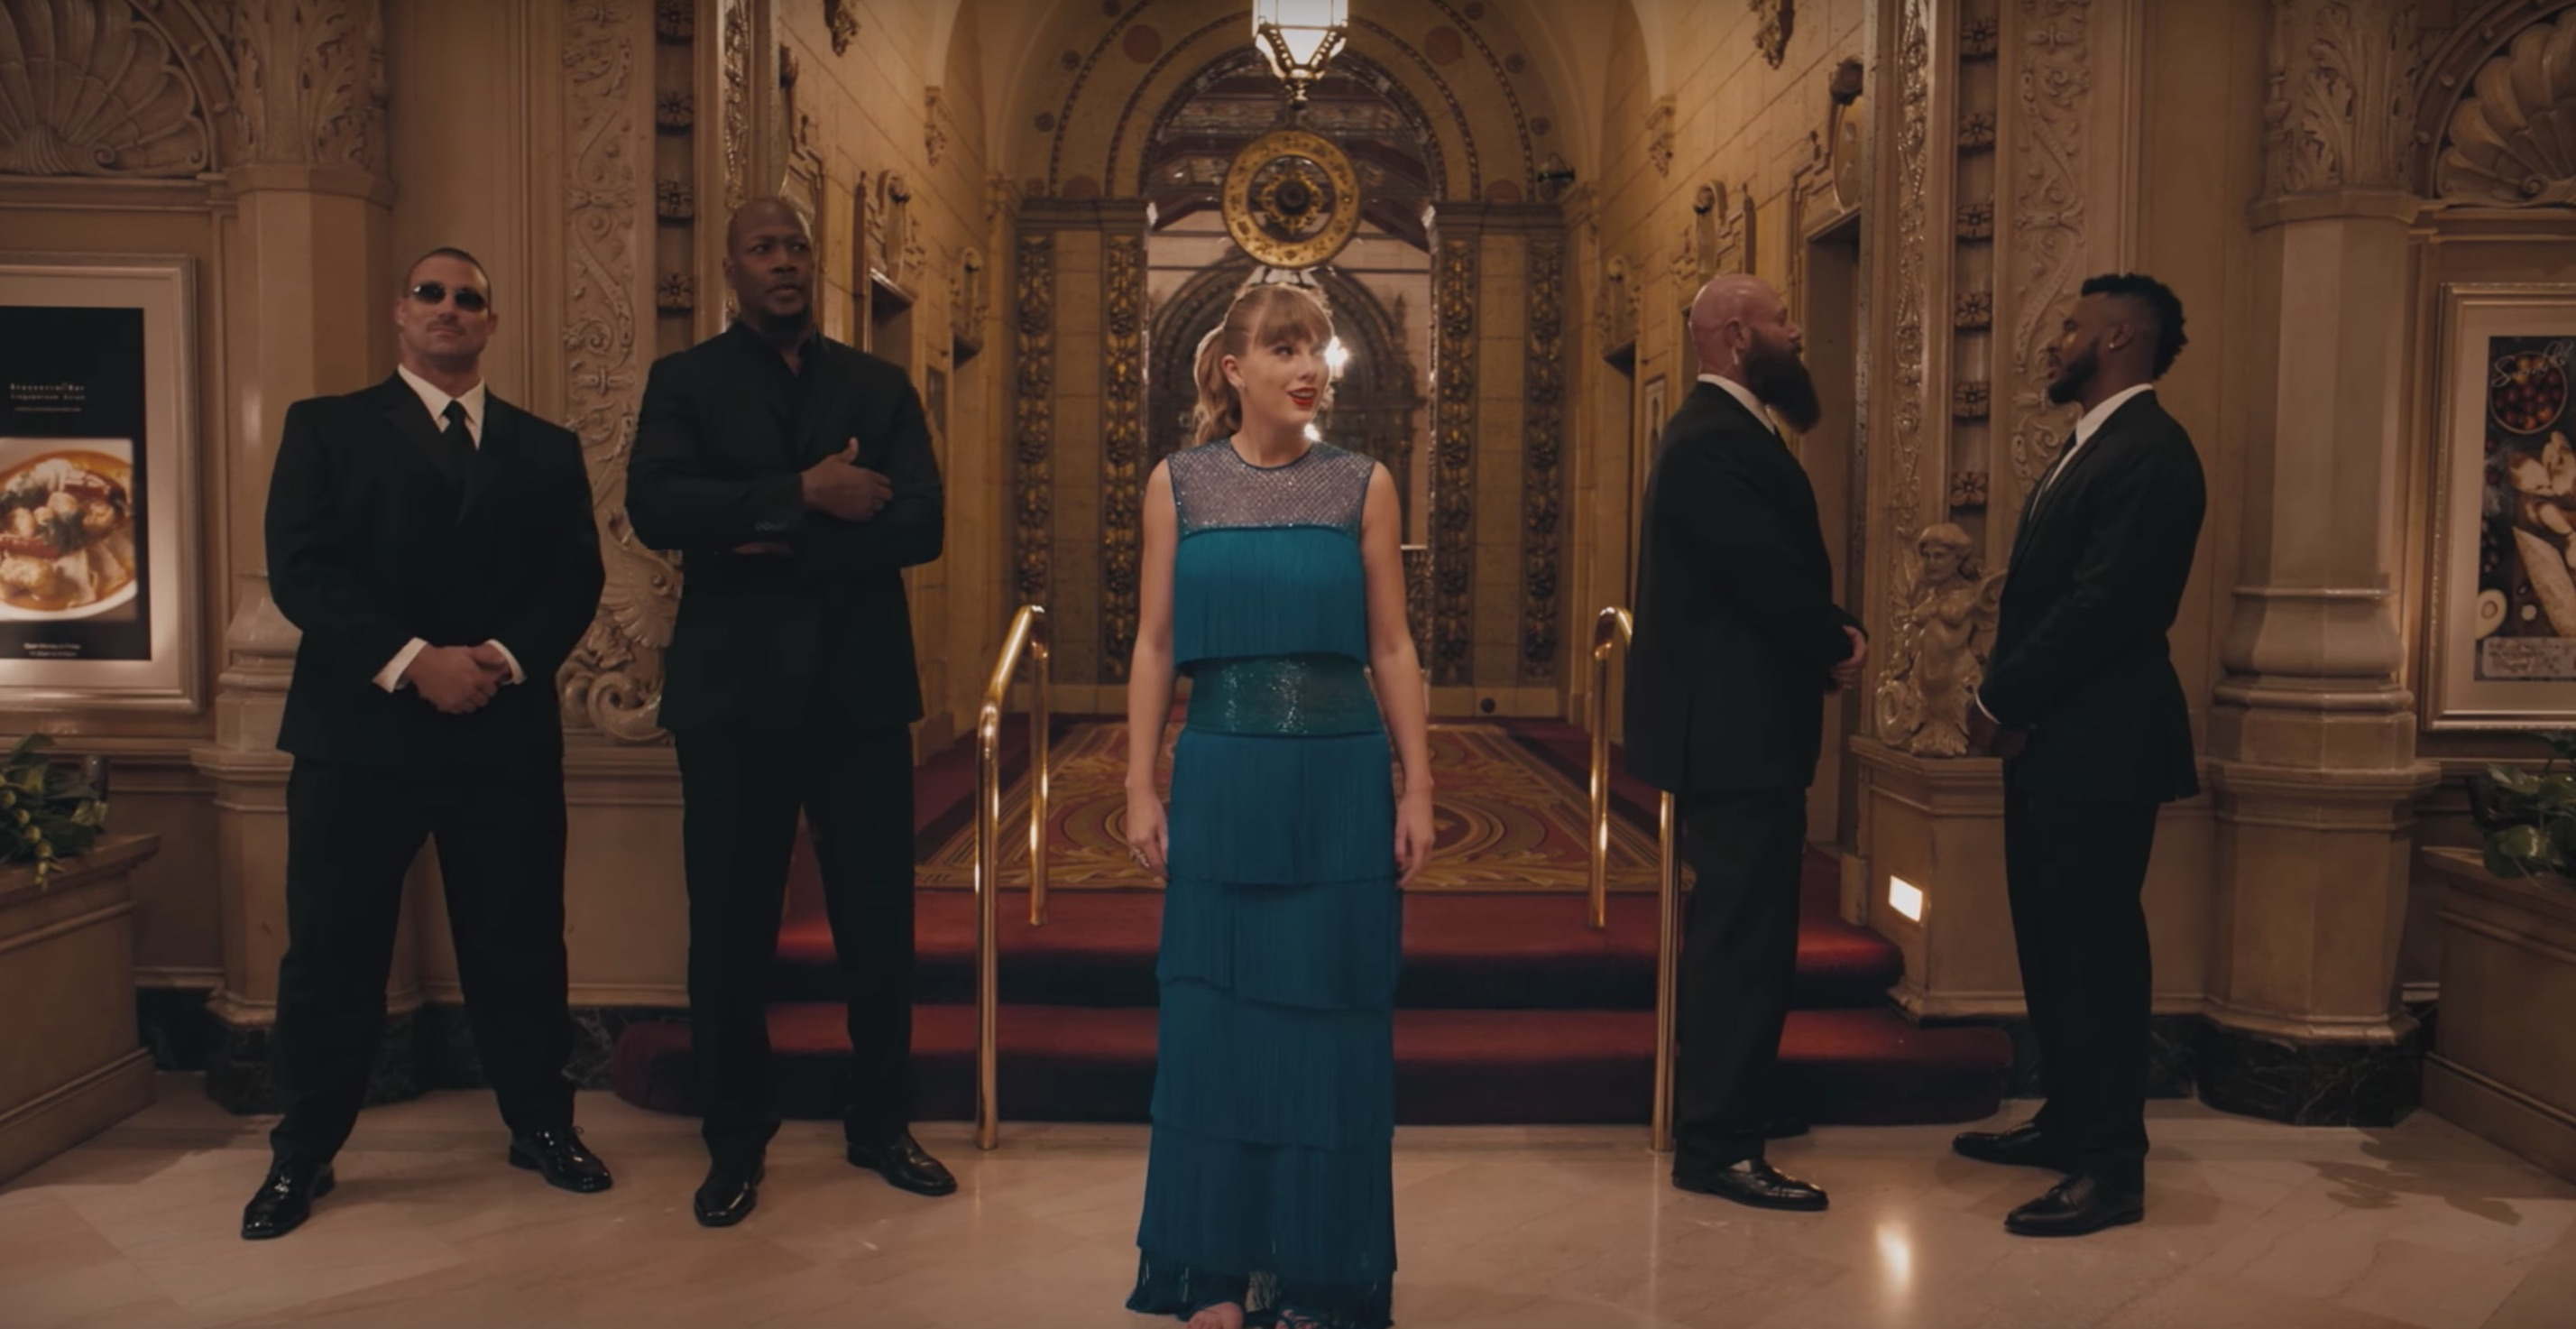 Taylor Swift Unique Dance Moves In new video 'Delicate'.